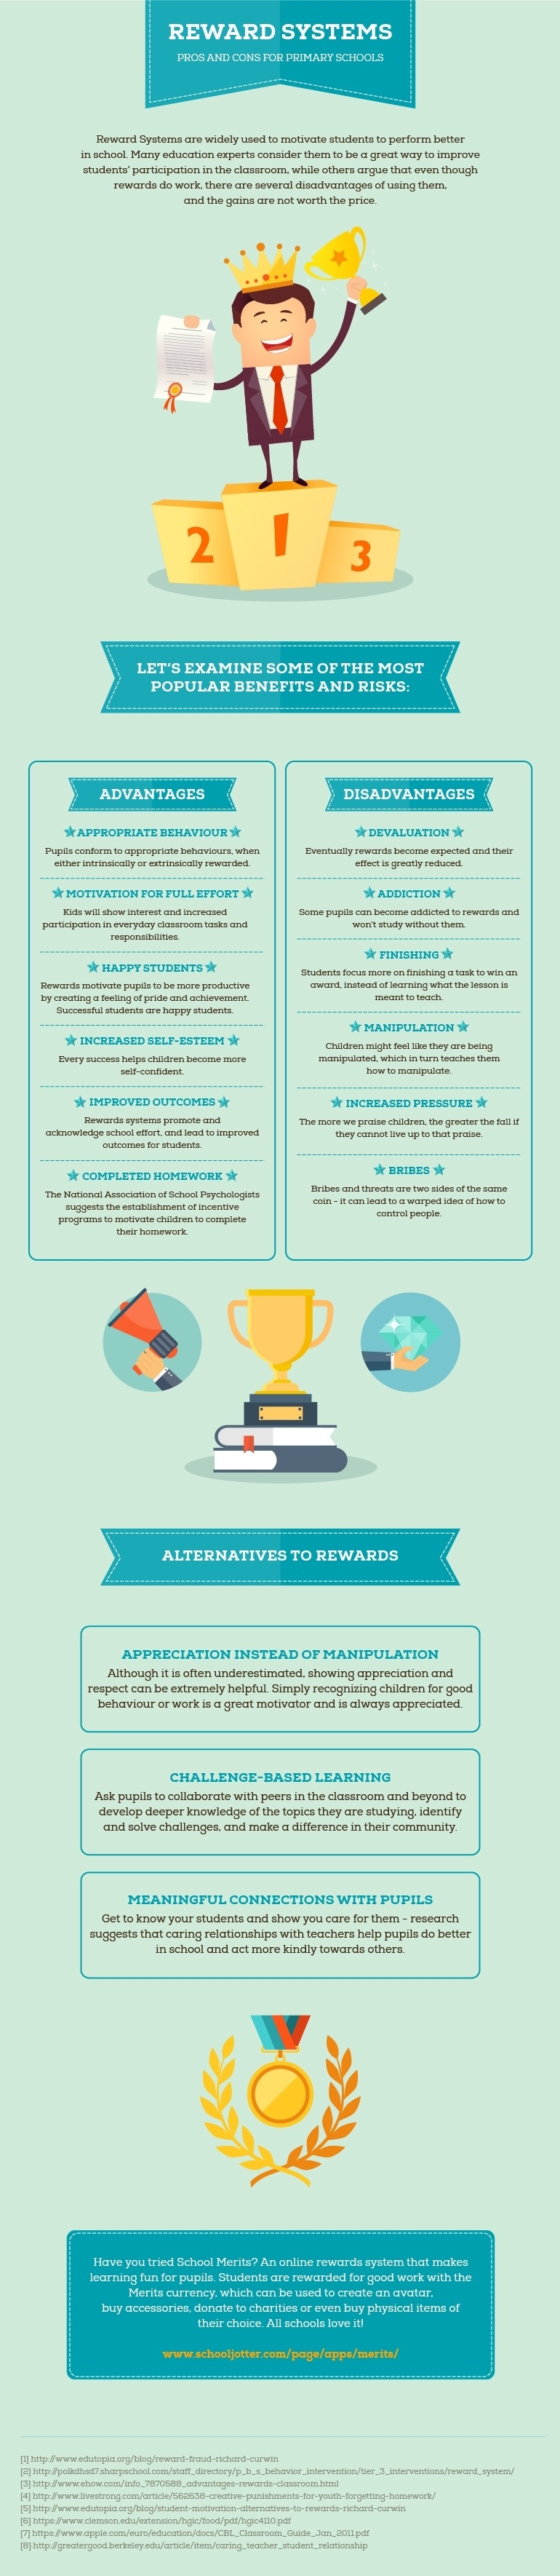 Pros and Cons of Reward Systems for Primary Schools Infographic